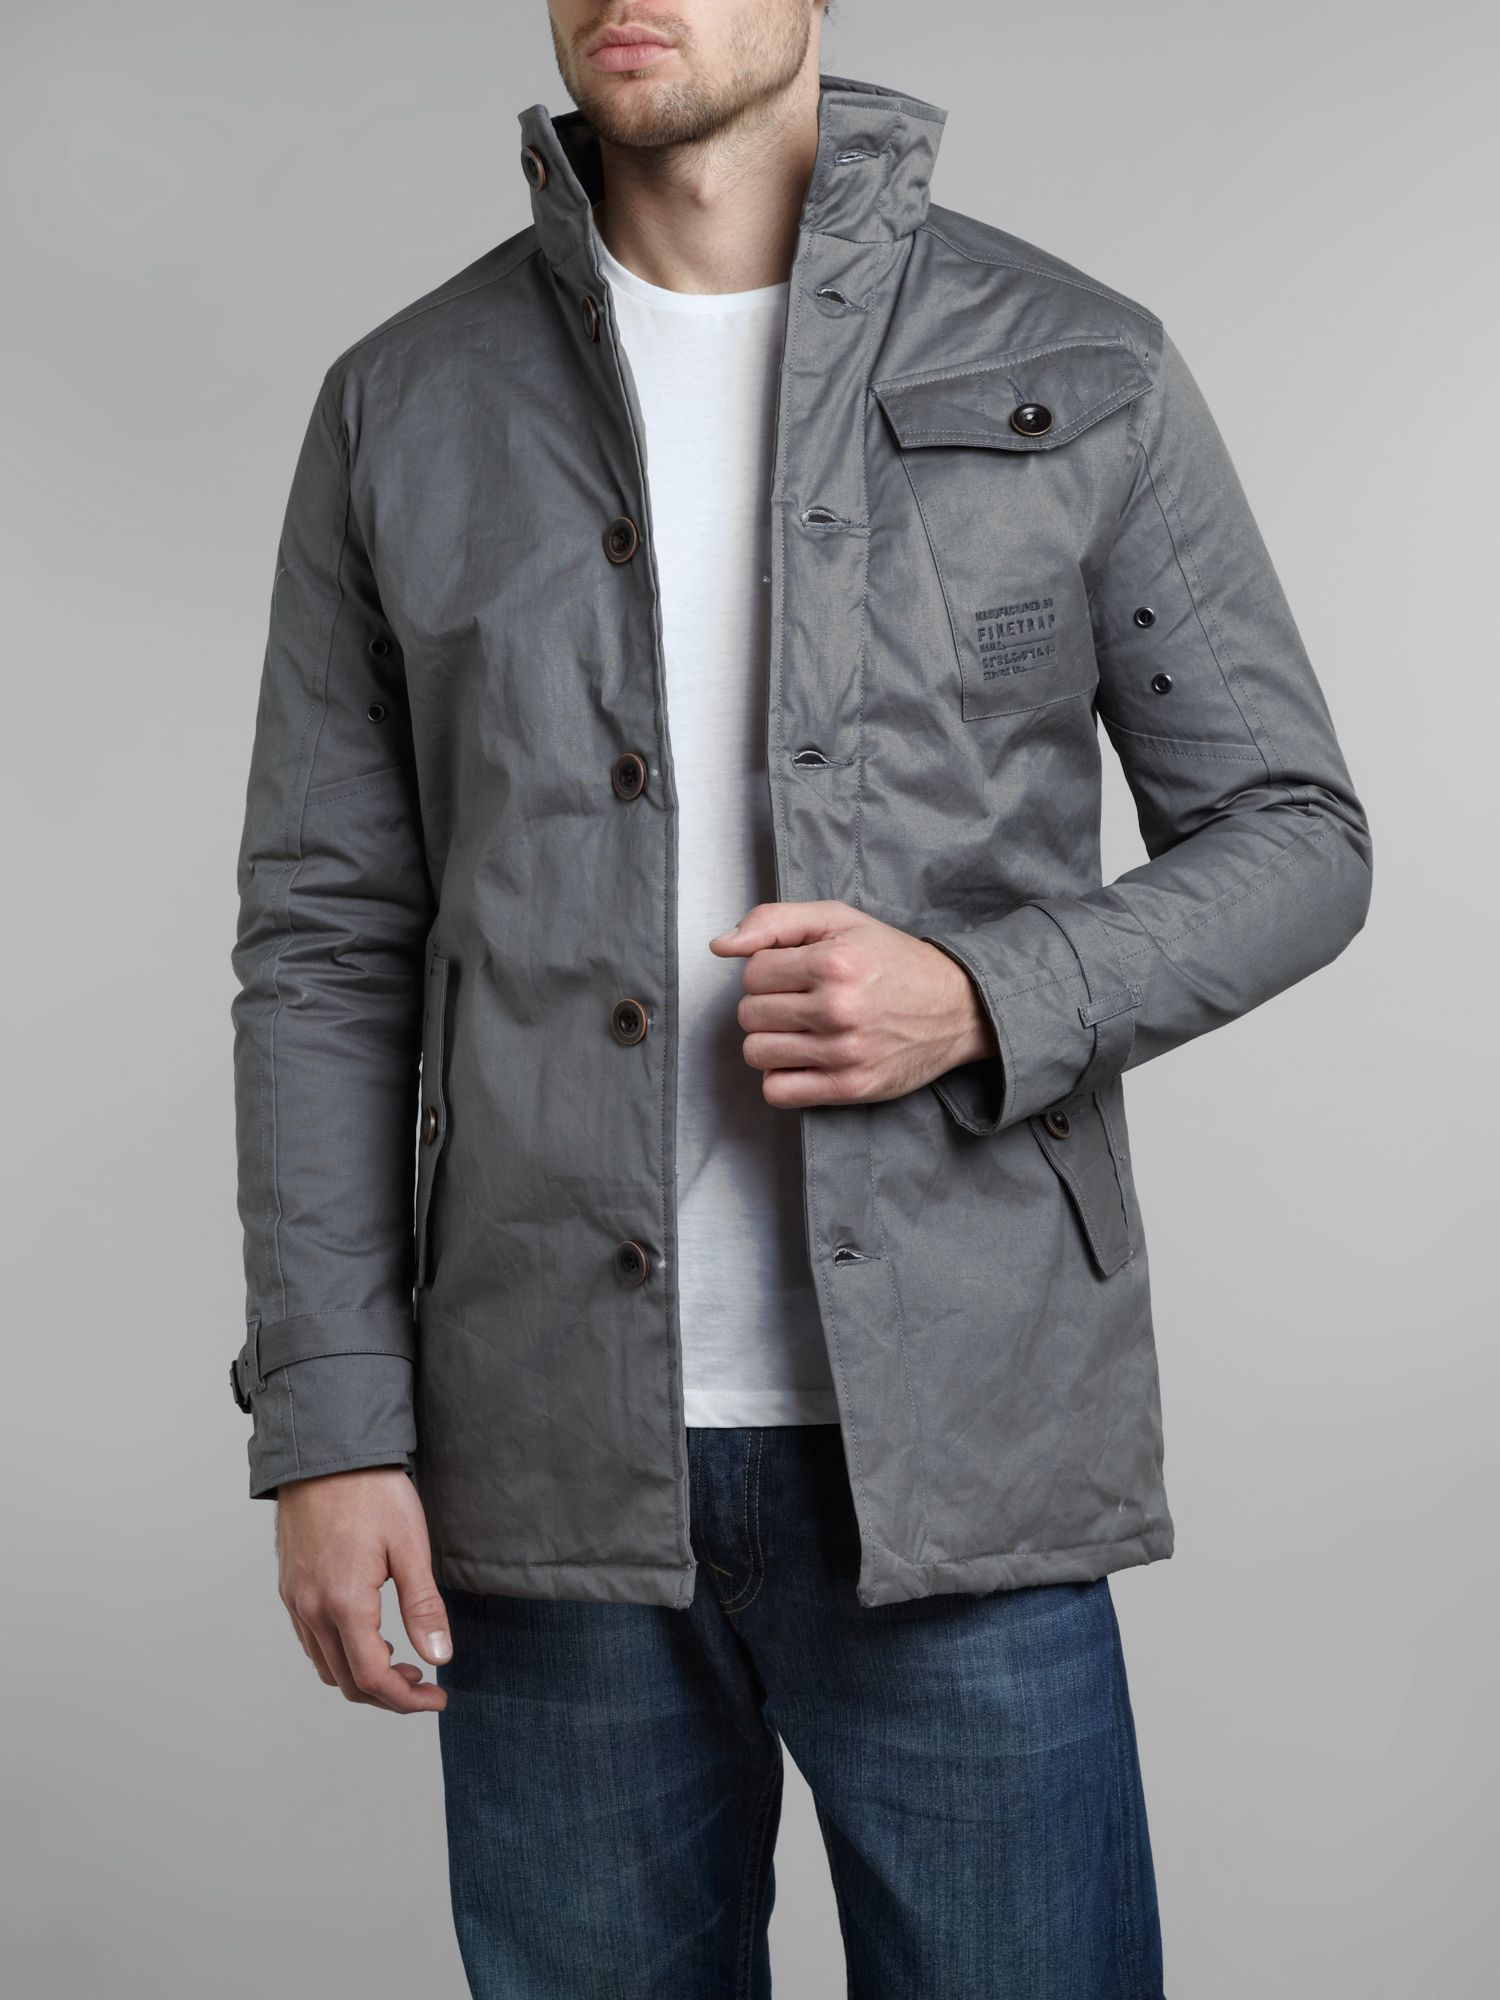 Three pocket jacket